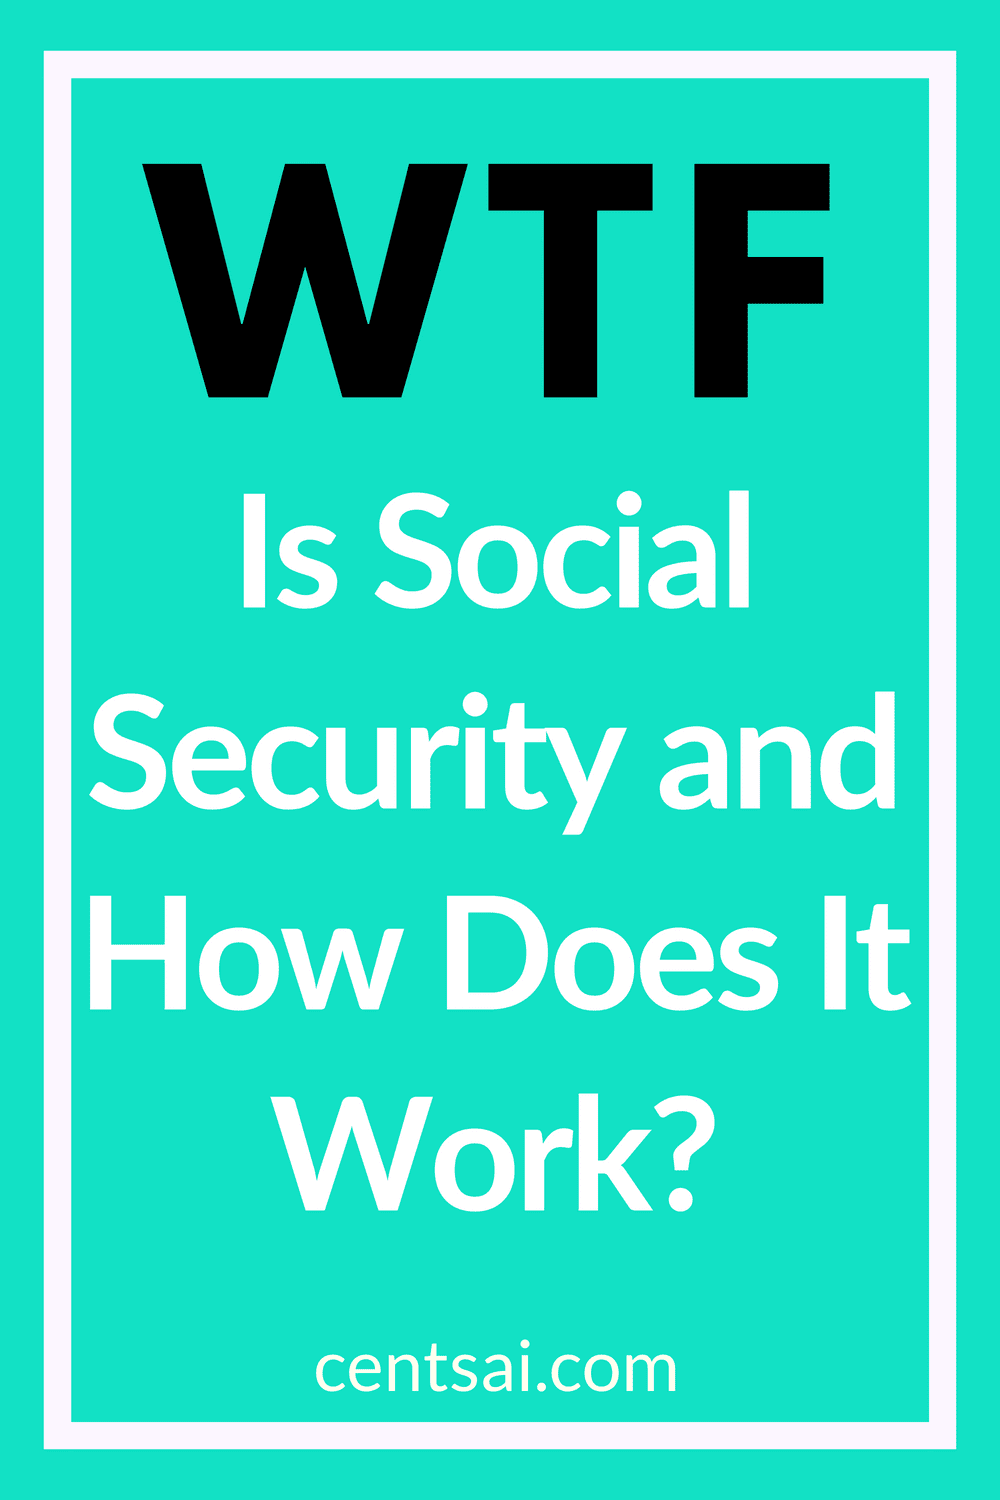 WTF Is Social Security and How Does It Work? Will you have enough money to support yourself when you retire? If you become disabled? Social Security can help. Learn what it is and how it works. #retirement #retired #socialsecuritybenefits #socialsecurity